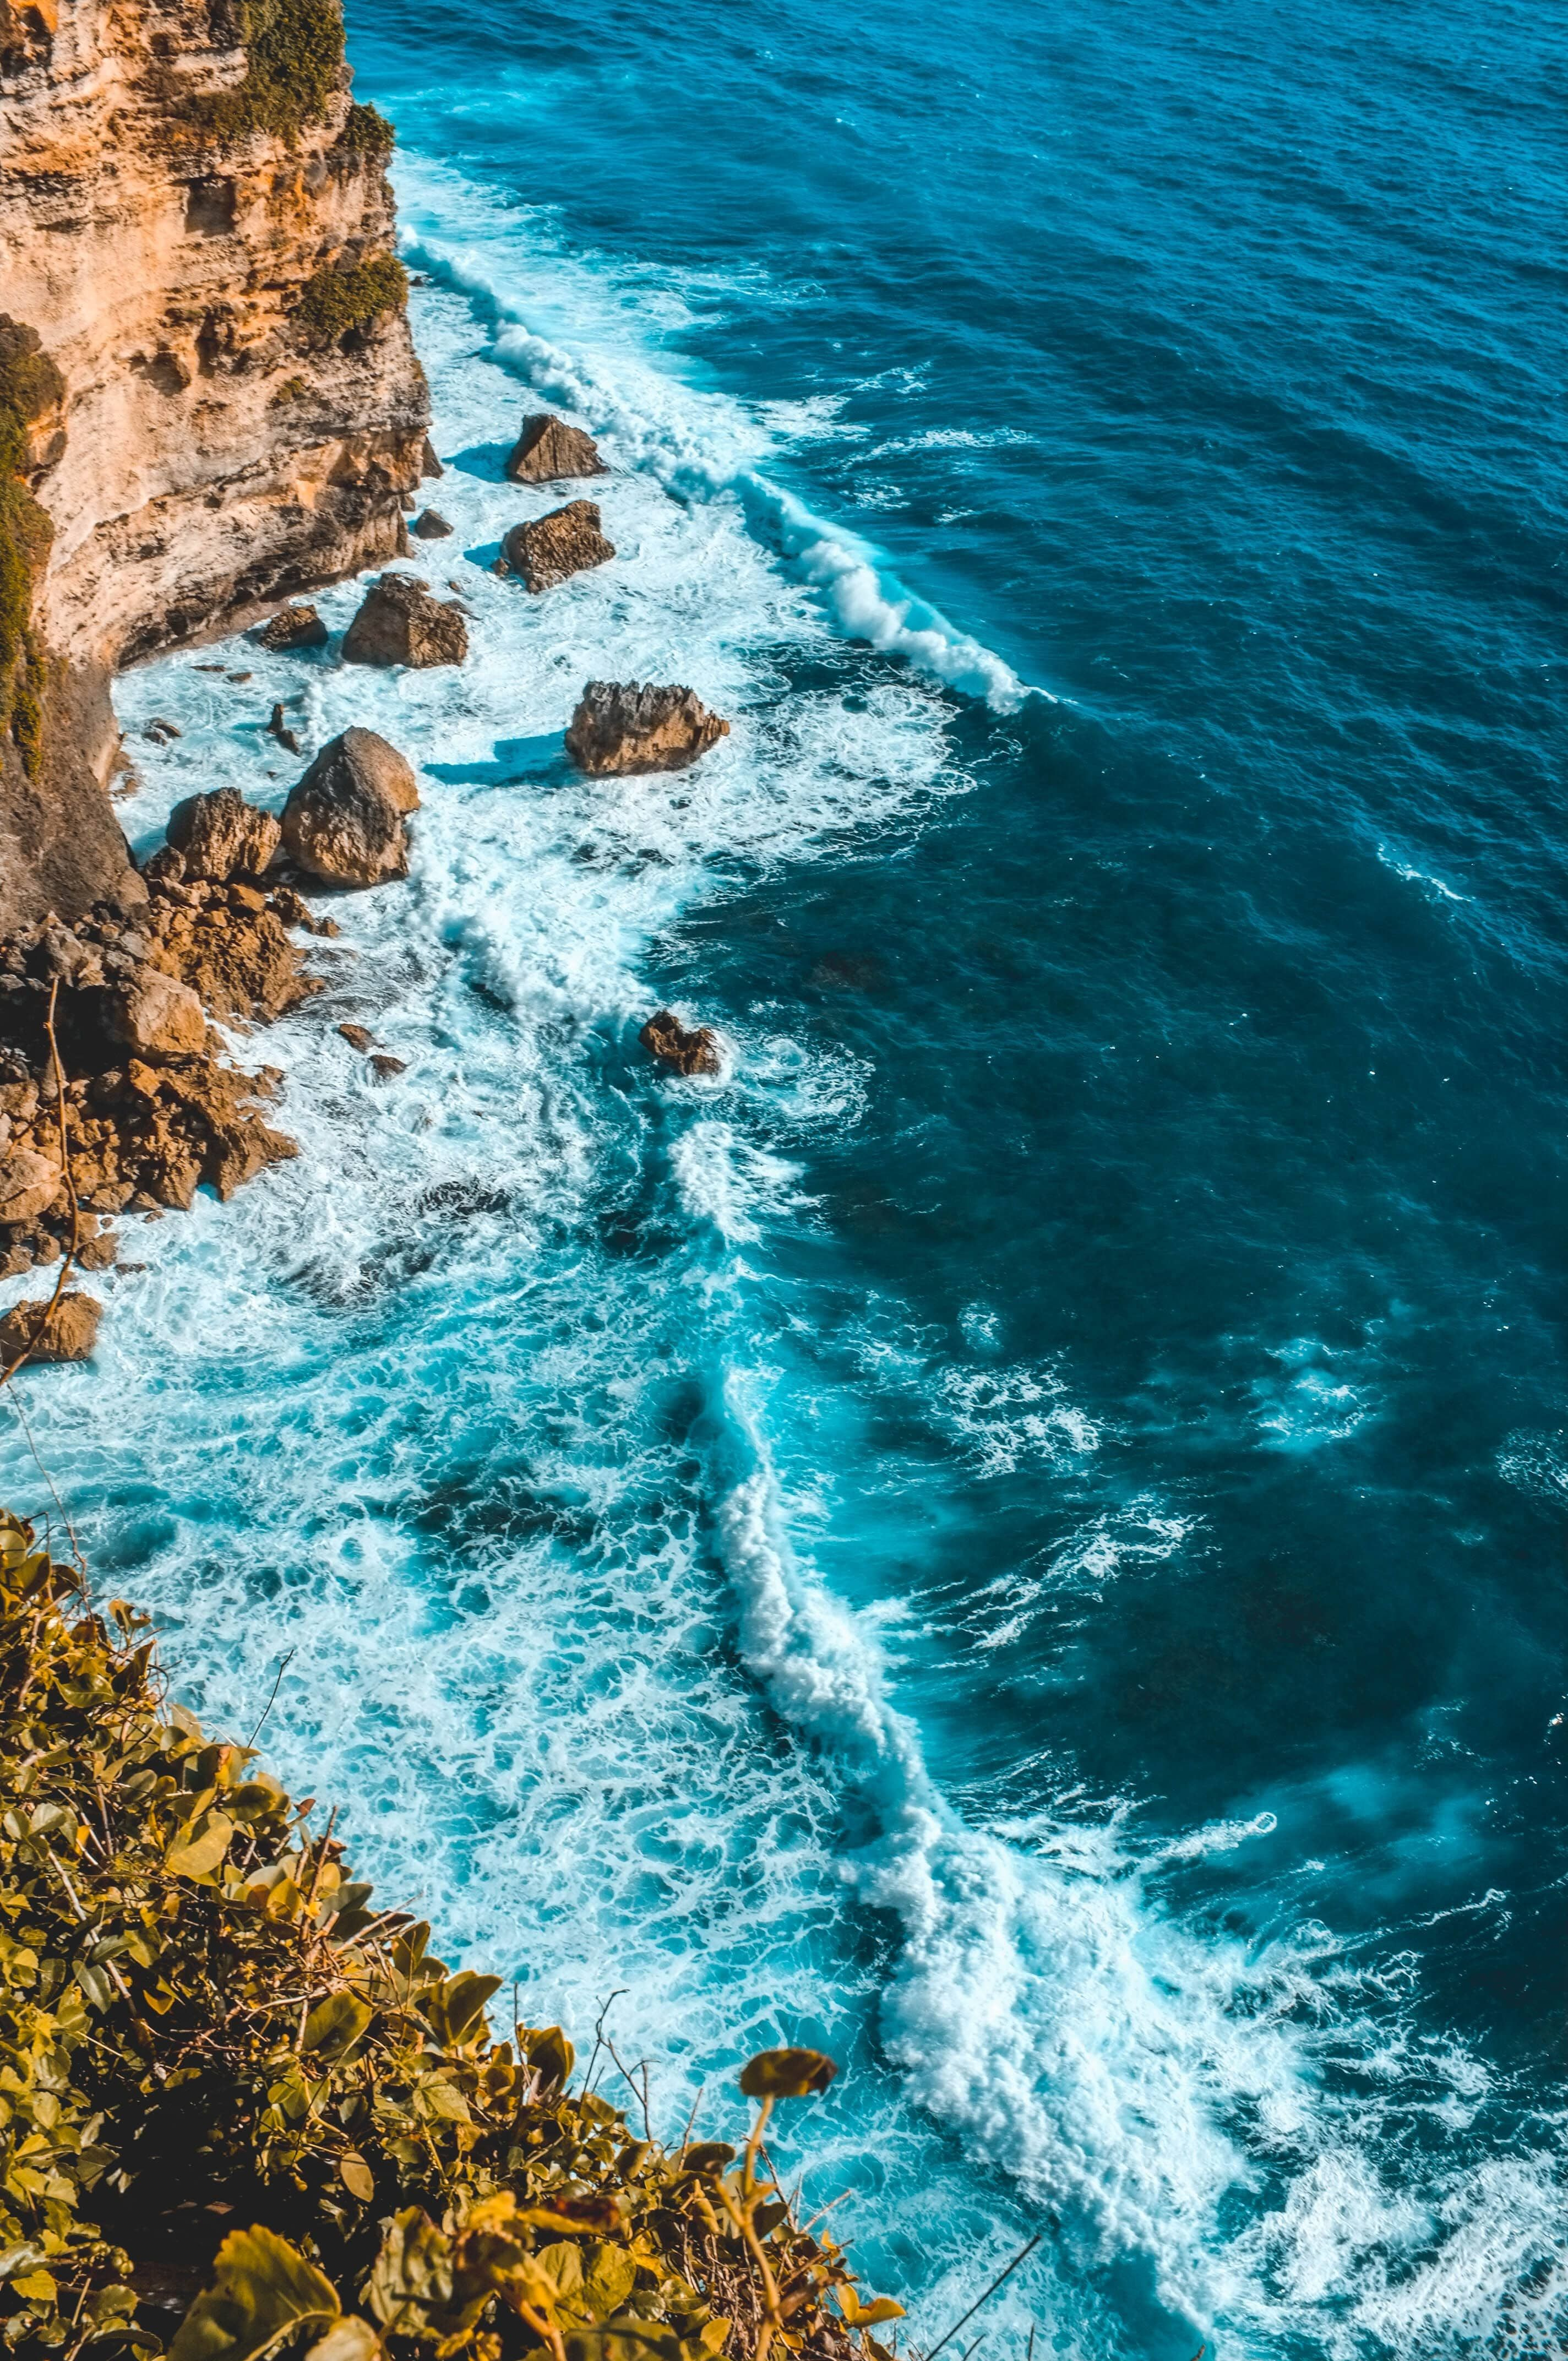 24 Best Things To Do In Bali 2019 Thenorthernboy New Images Gallery Landscape Wallpaper Ocean Wallpaper Beach Wallpaper